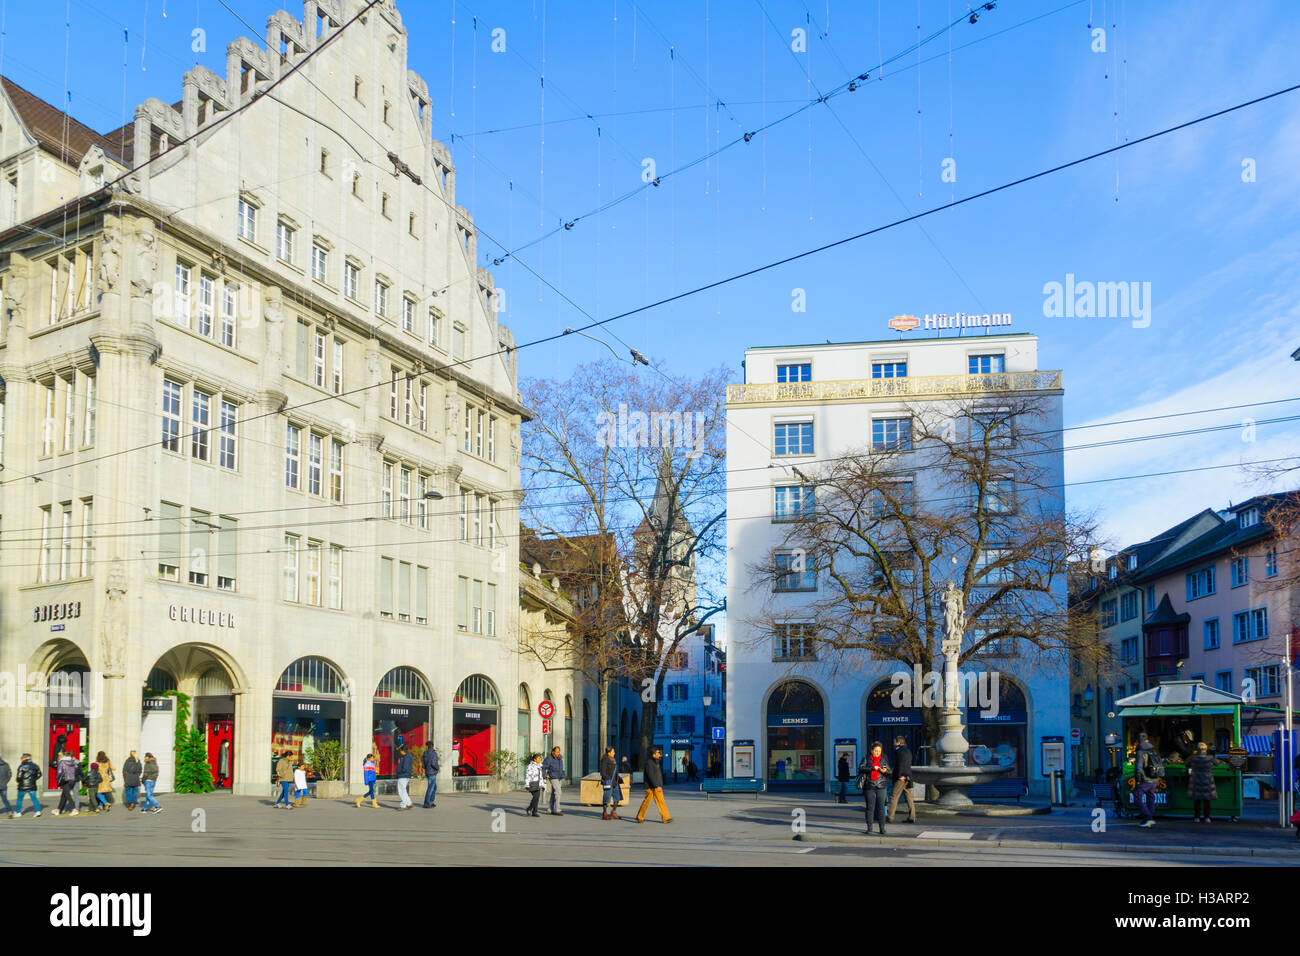 ZURICH, SWITZERLAND - DECEMBER 27, 2015: Scene of the Paradeplatz (Parade) square, with locals and visitors, in - Stock Image